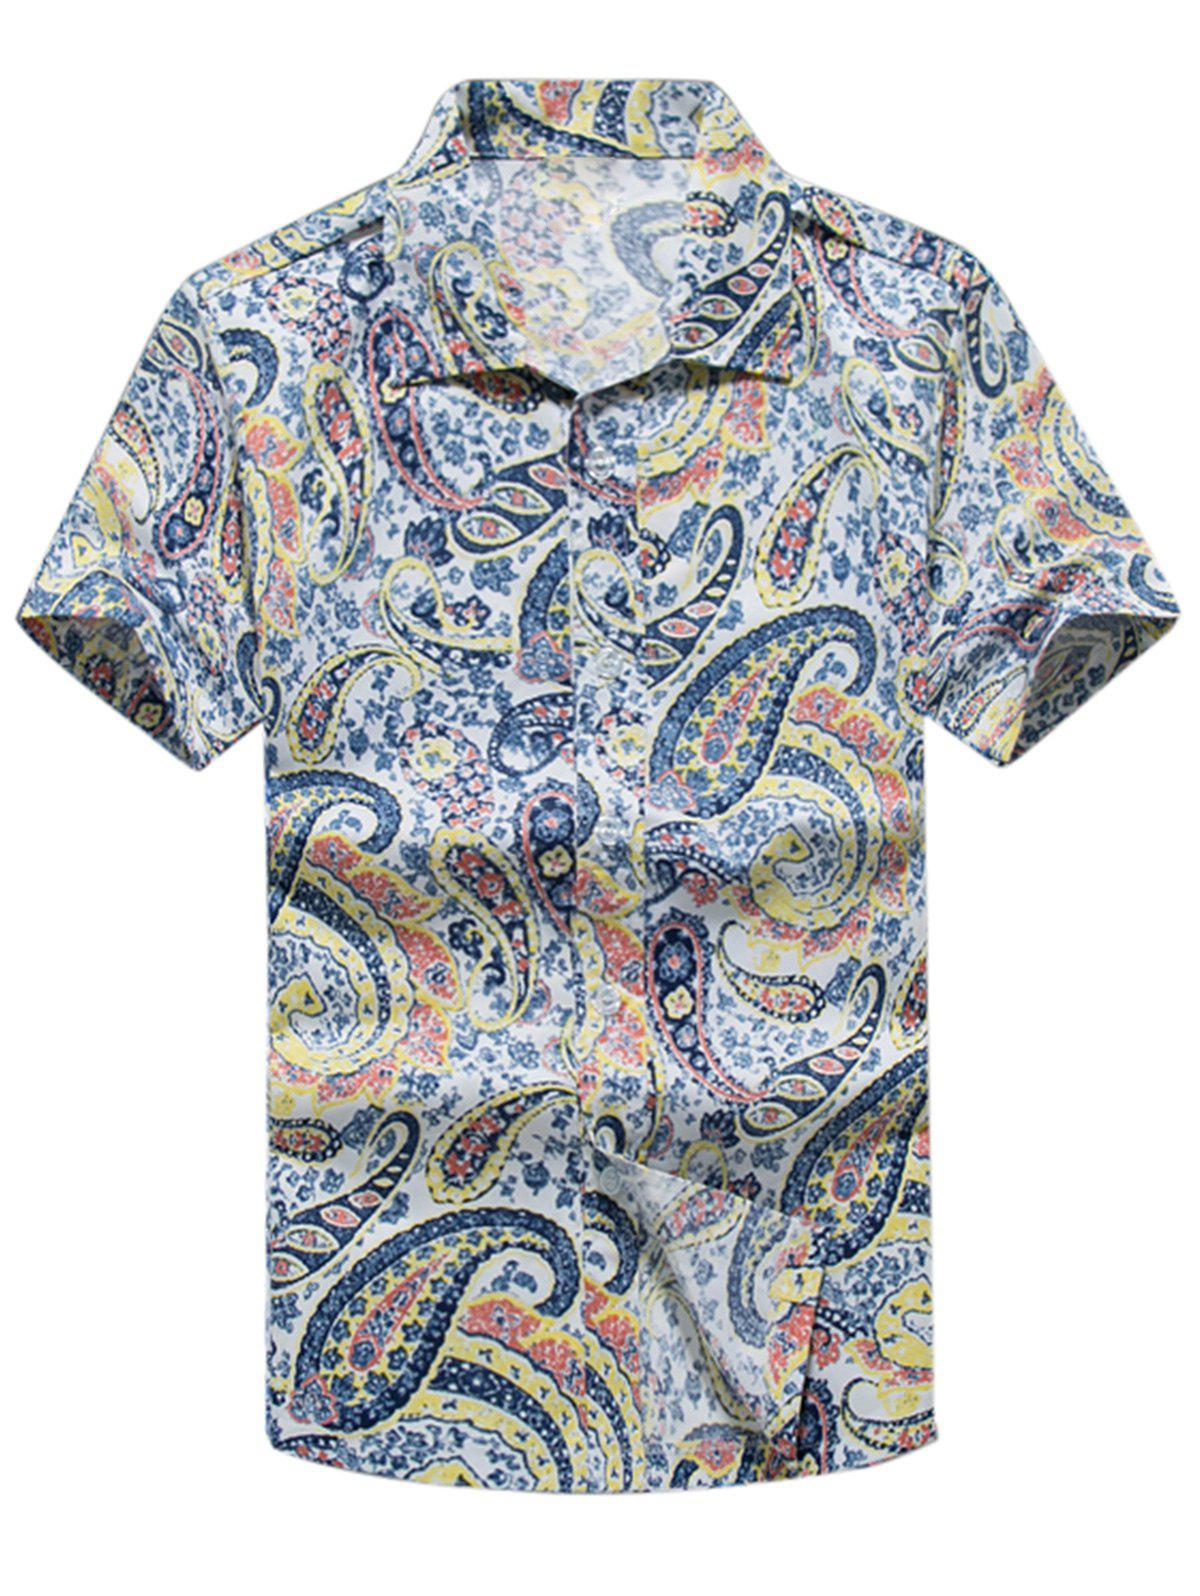 Casual Paisley Print Short Sleeve Shirt - YELLOW 4XL